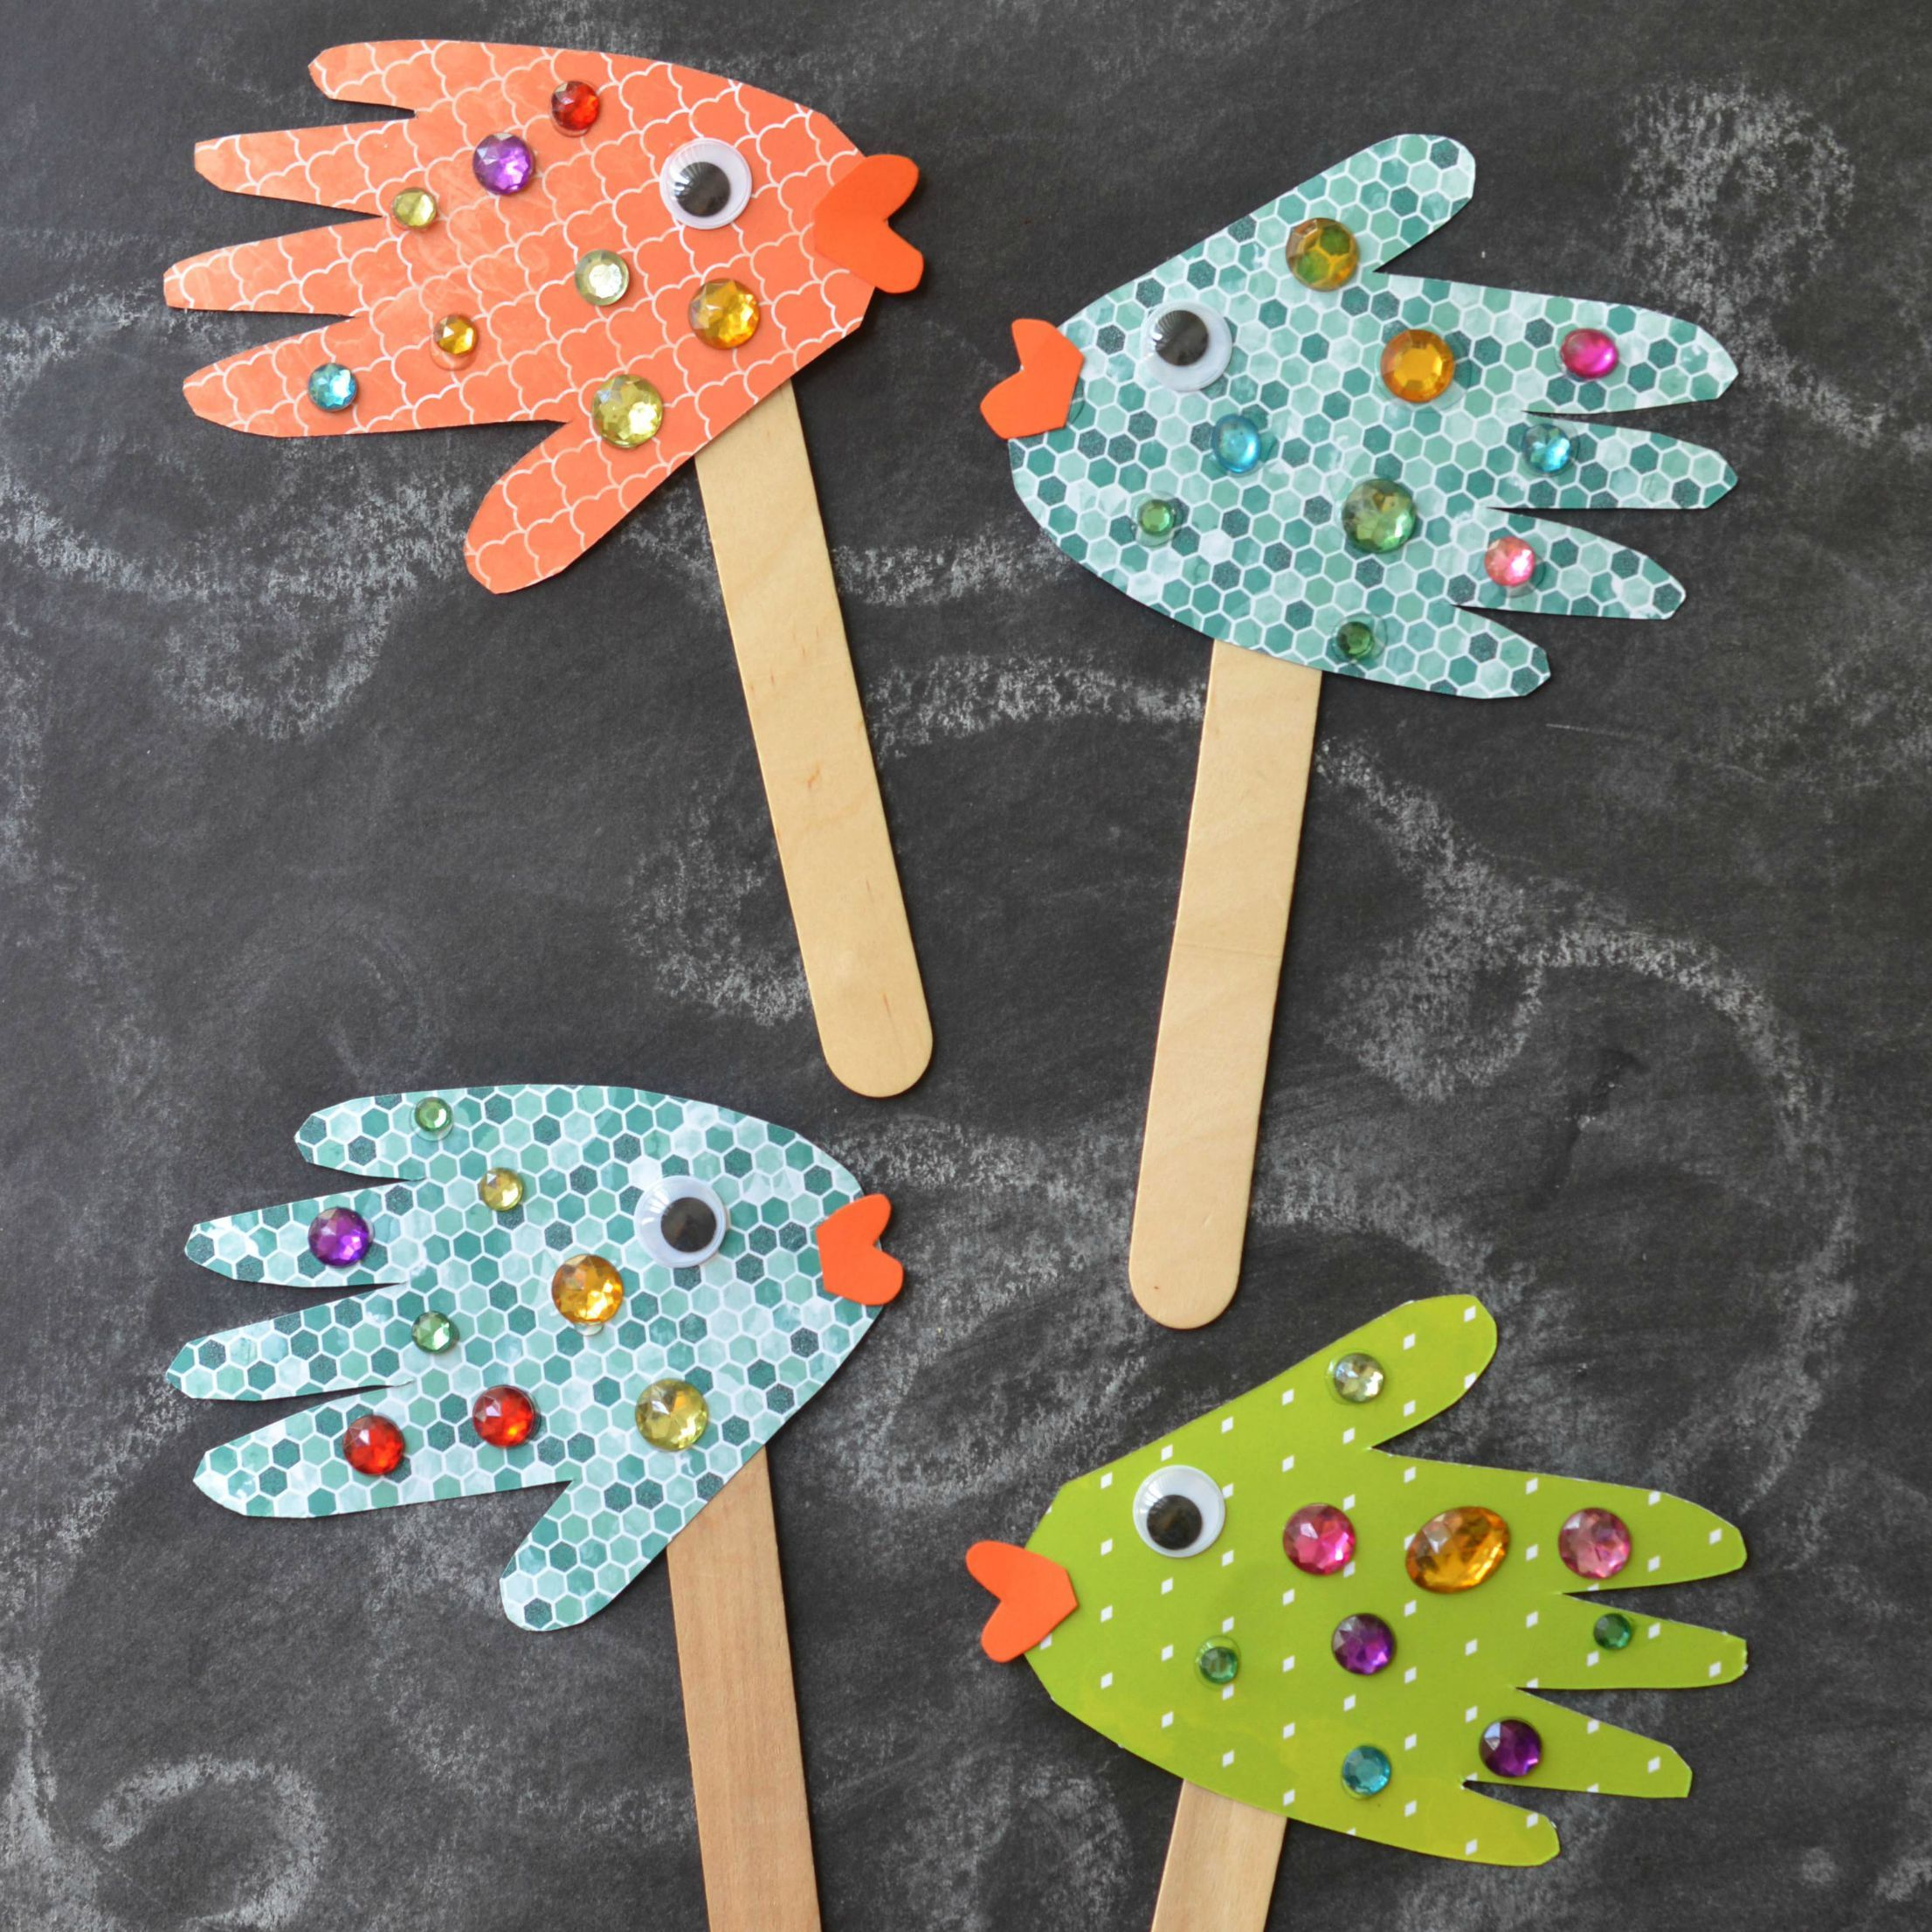 Whether You Make Them As A Simple Afternoon Craft To Pass